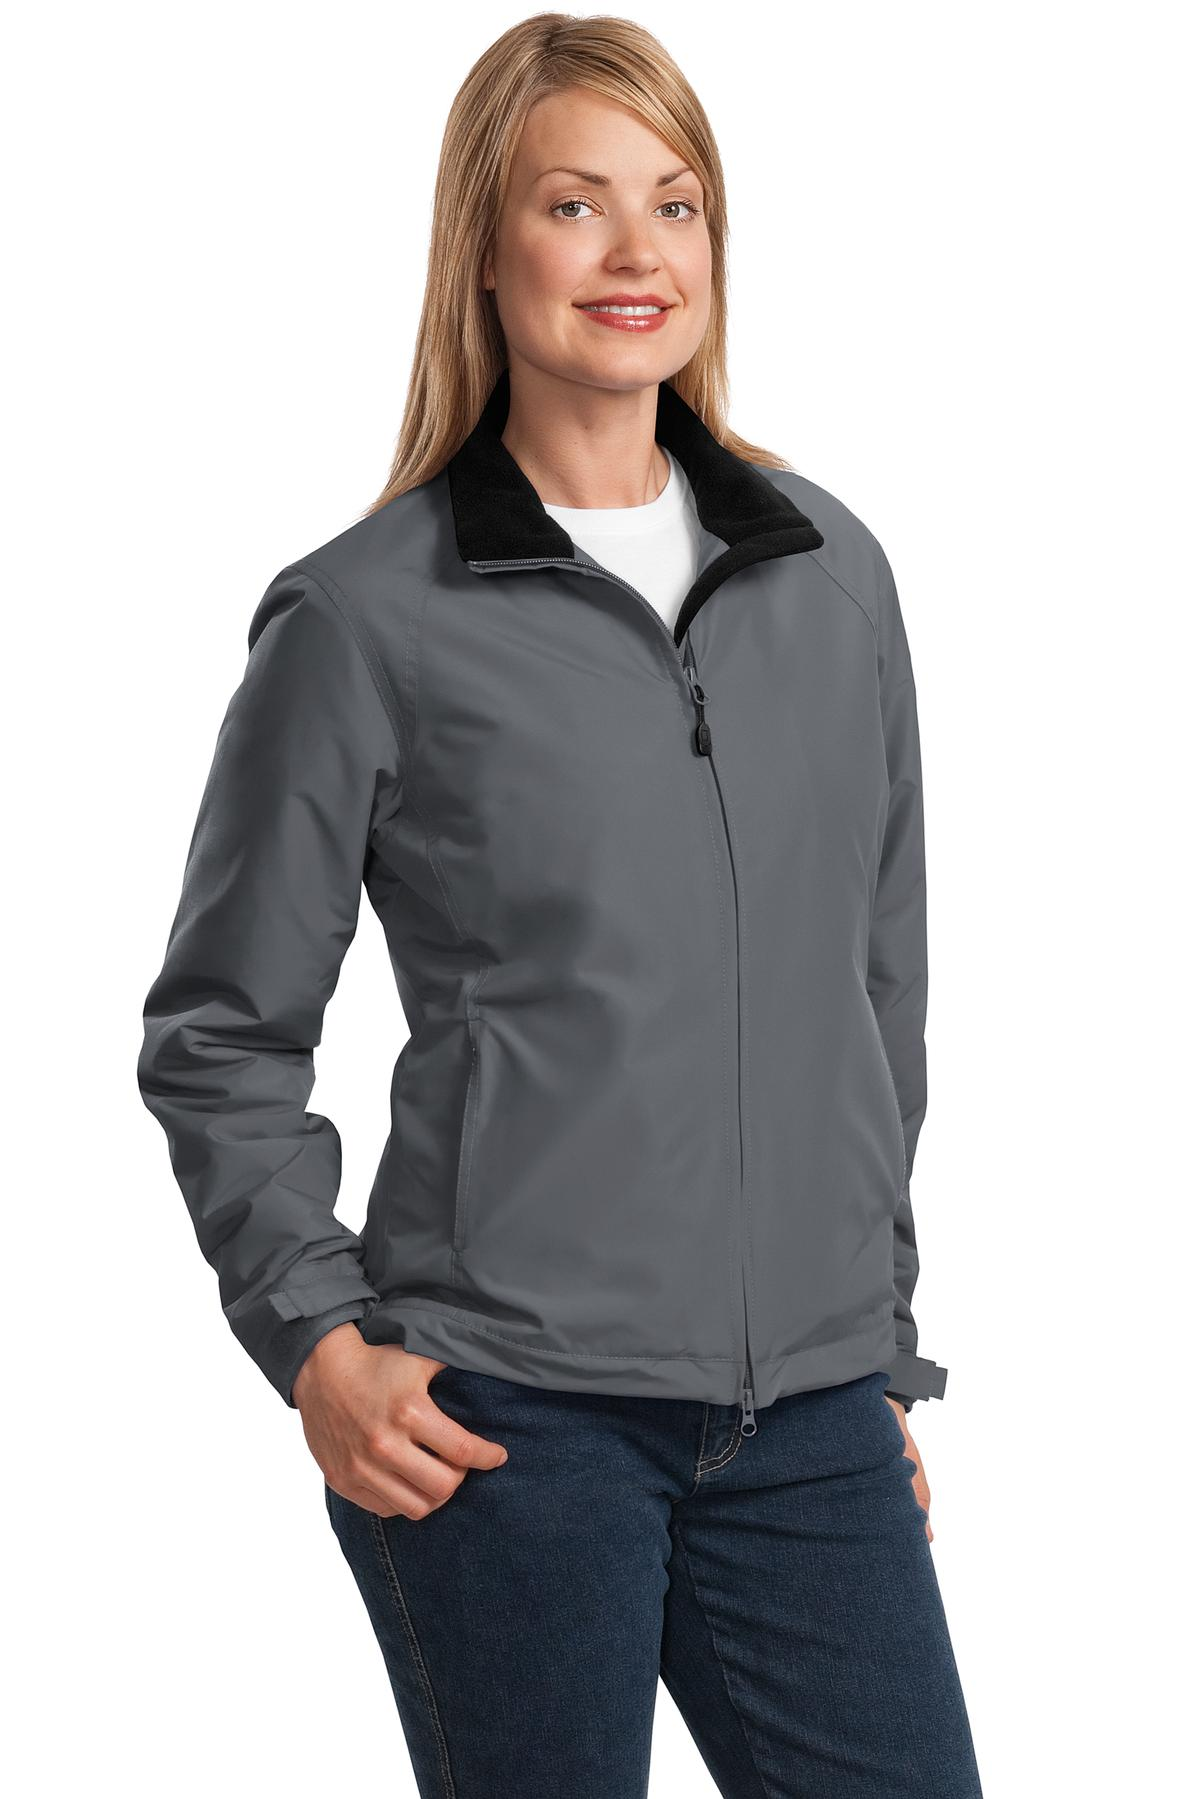 Ladies Challenger Jacket - RCL2270